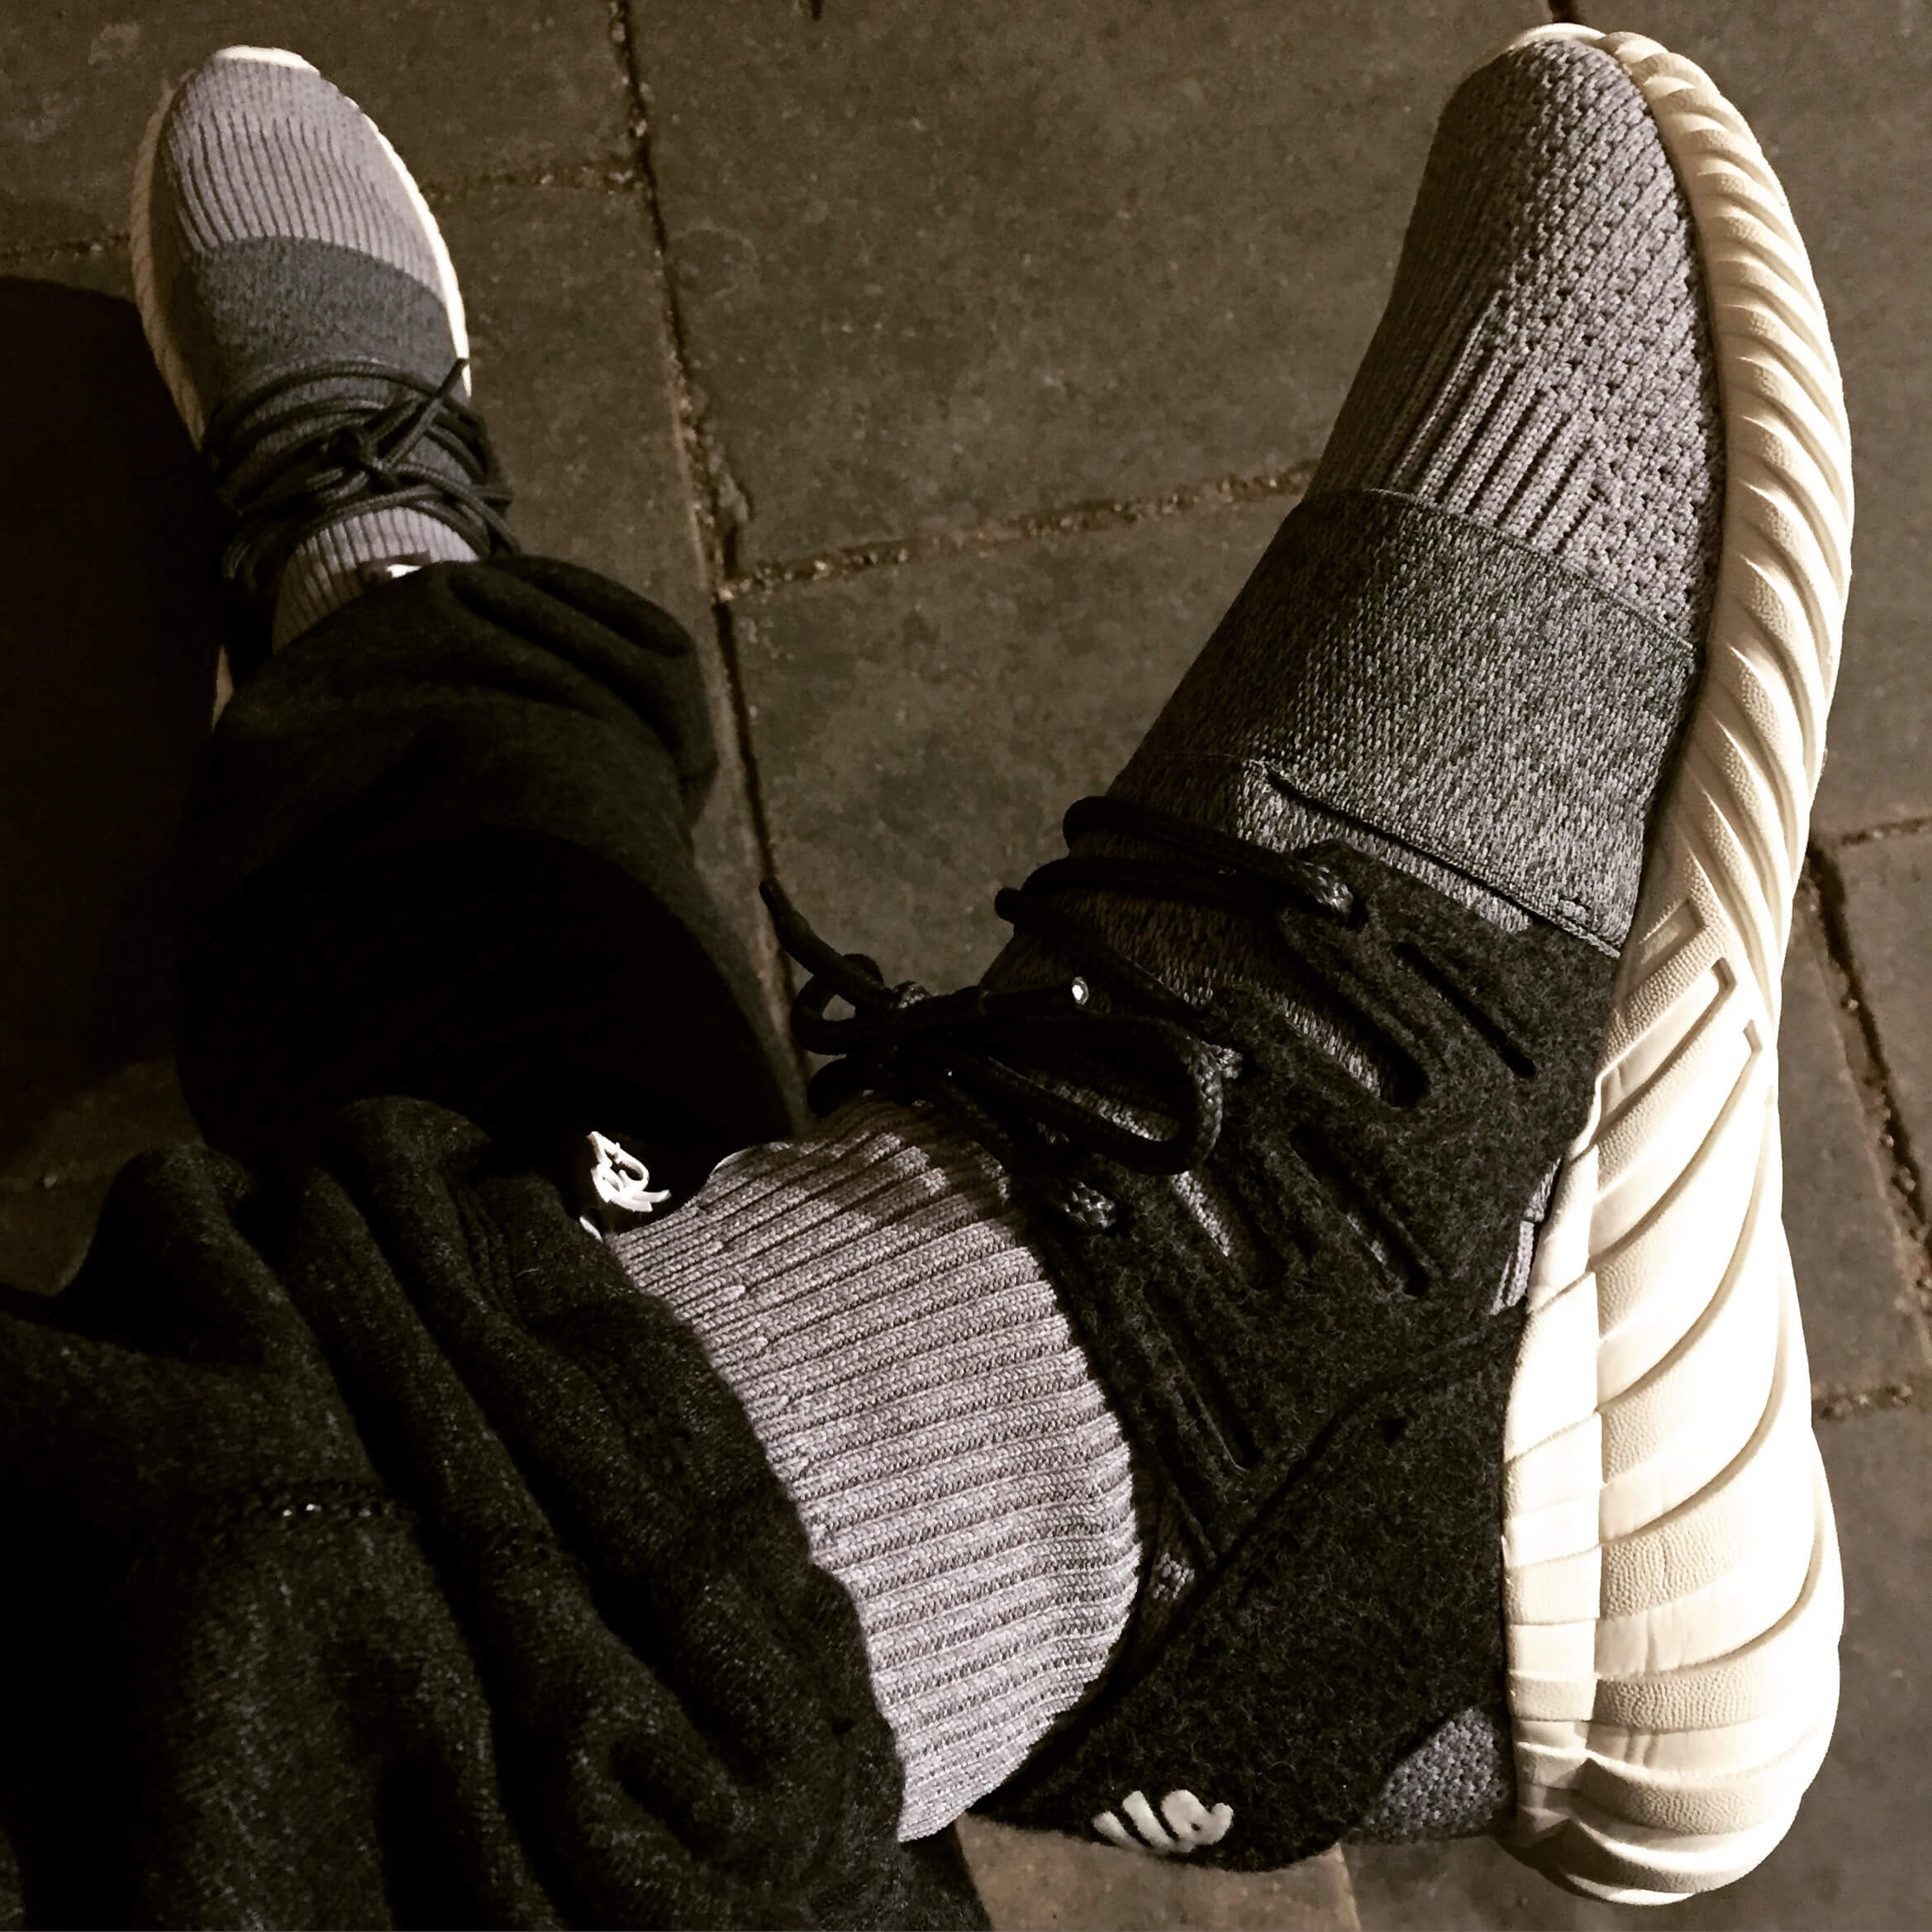 KITH-Adidas-Tubular-Doom-Top-View-Benstah-Onfeet